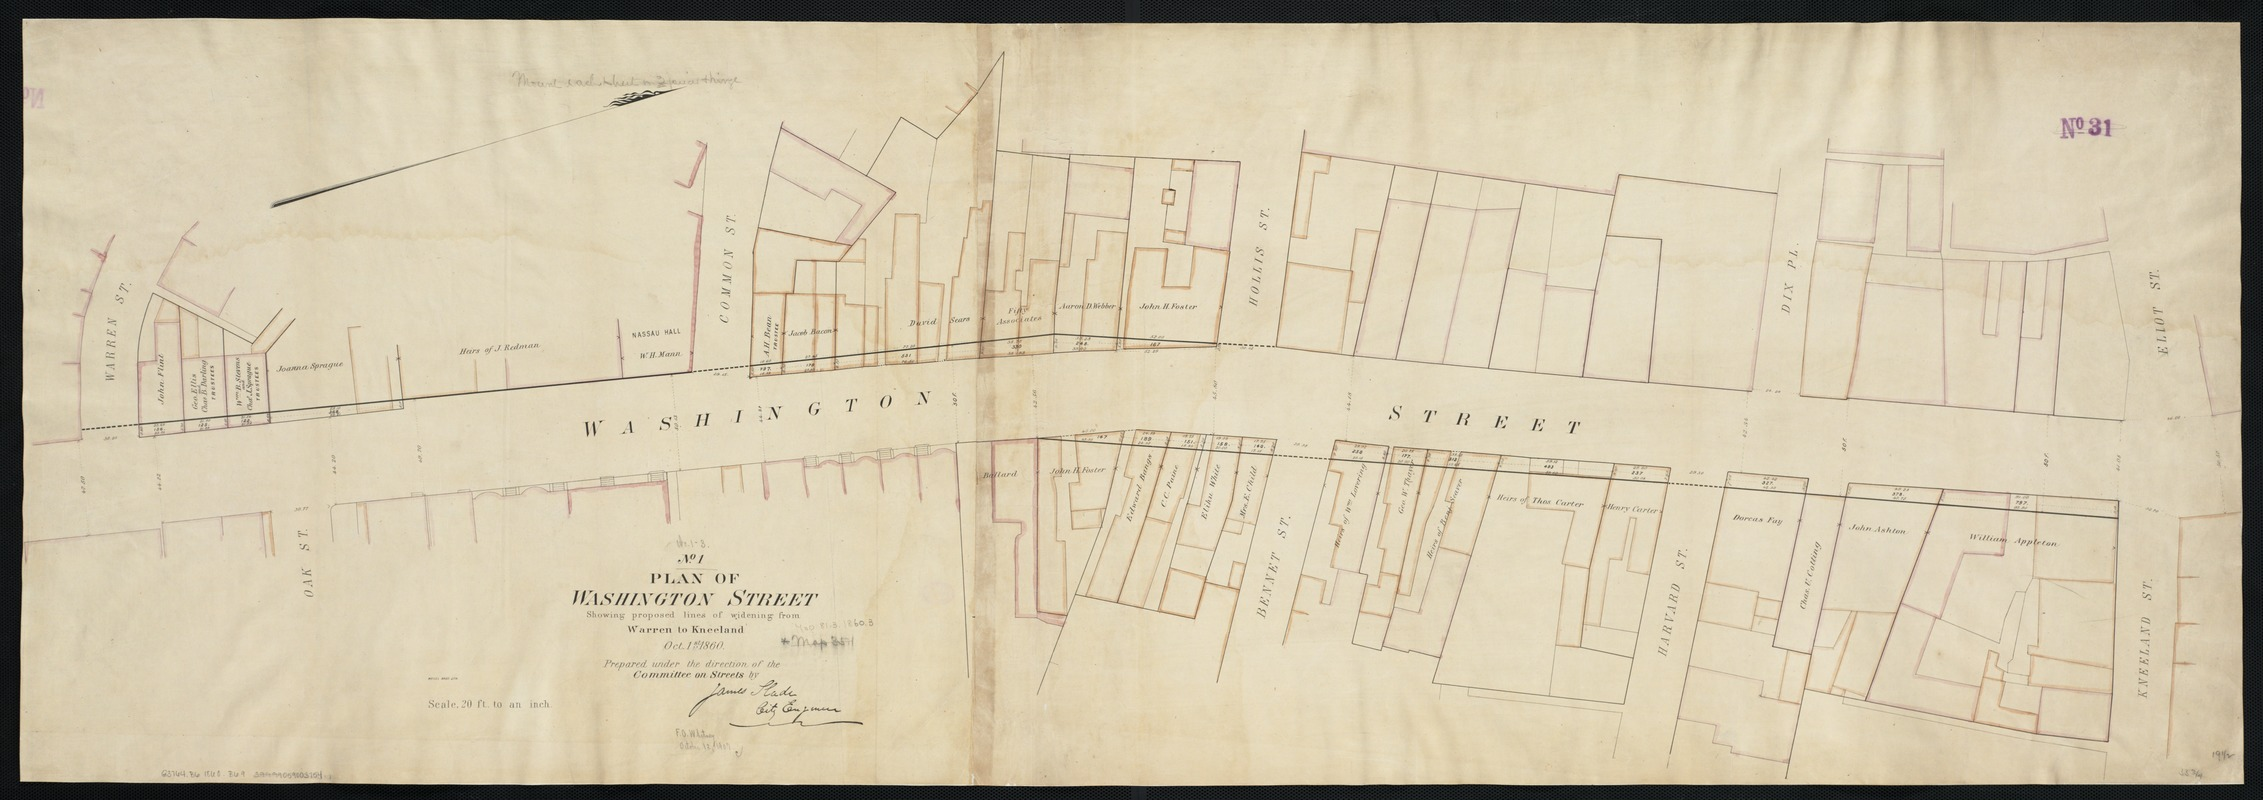 Plan of Washington Street showing proposed lines of widening from Warren to Kneeland